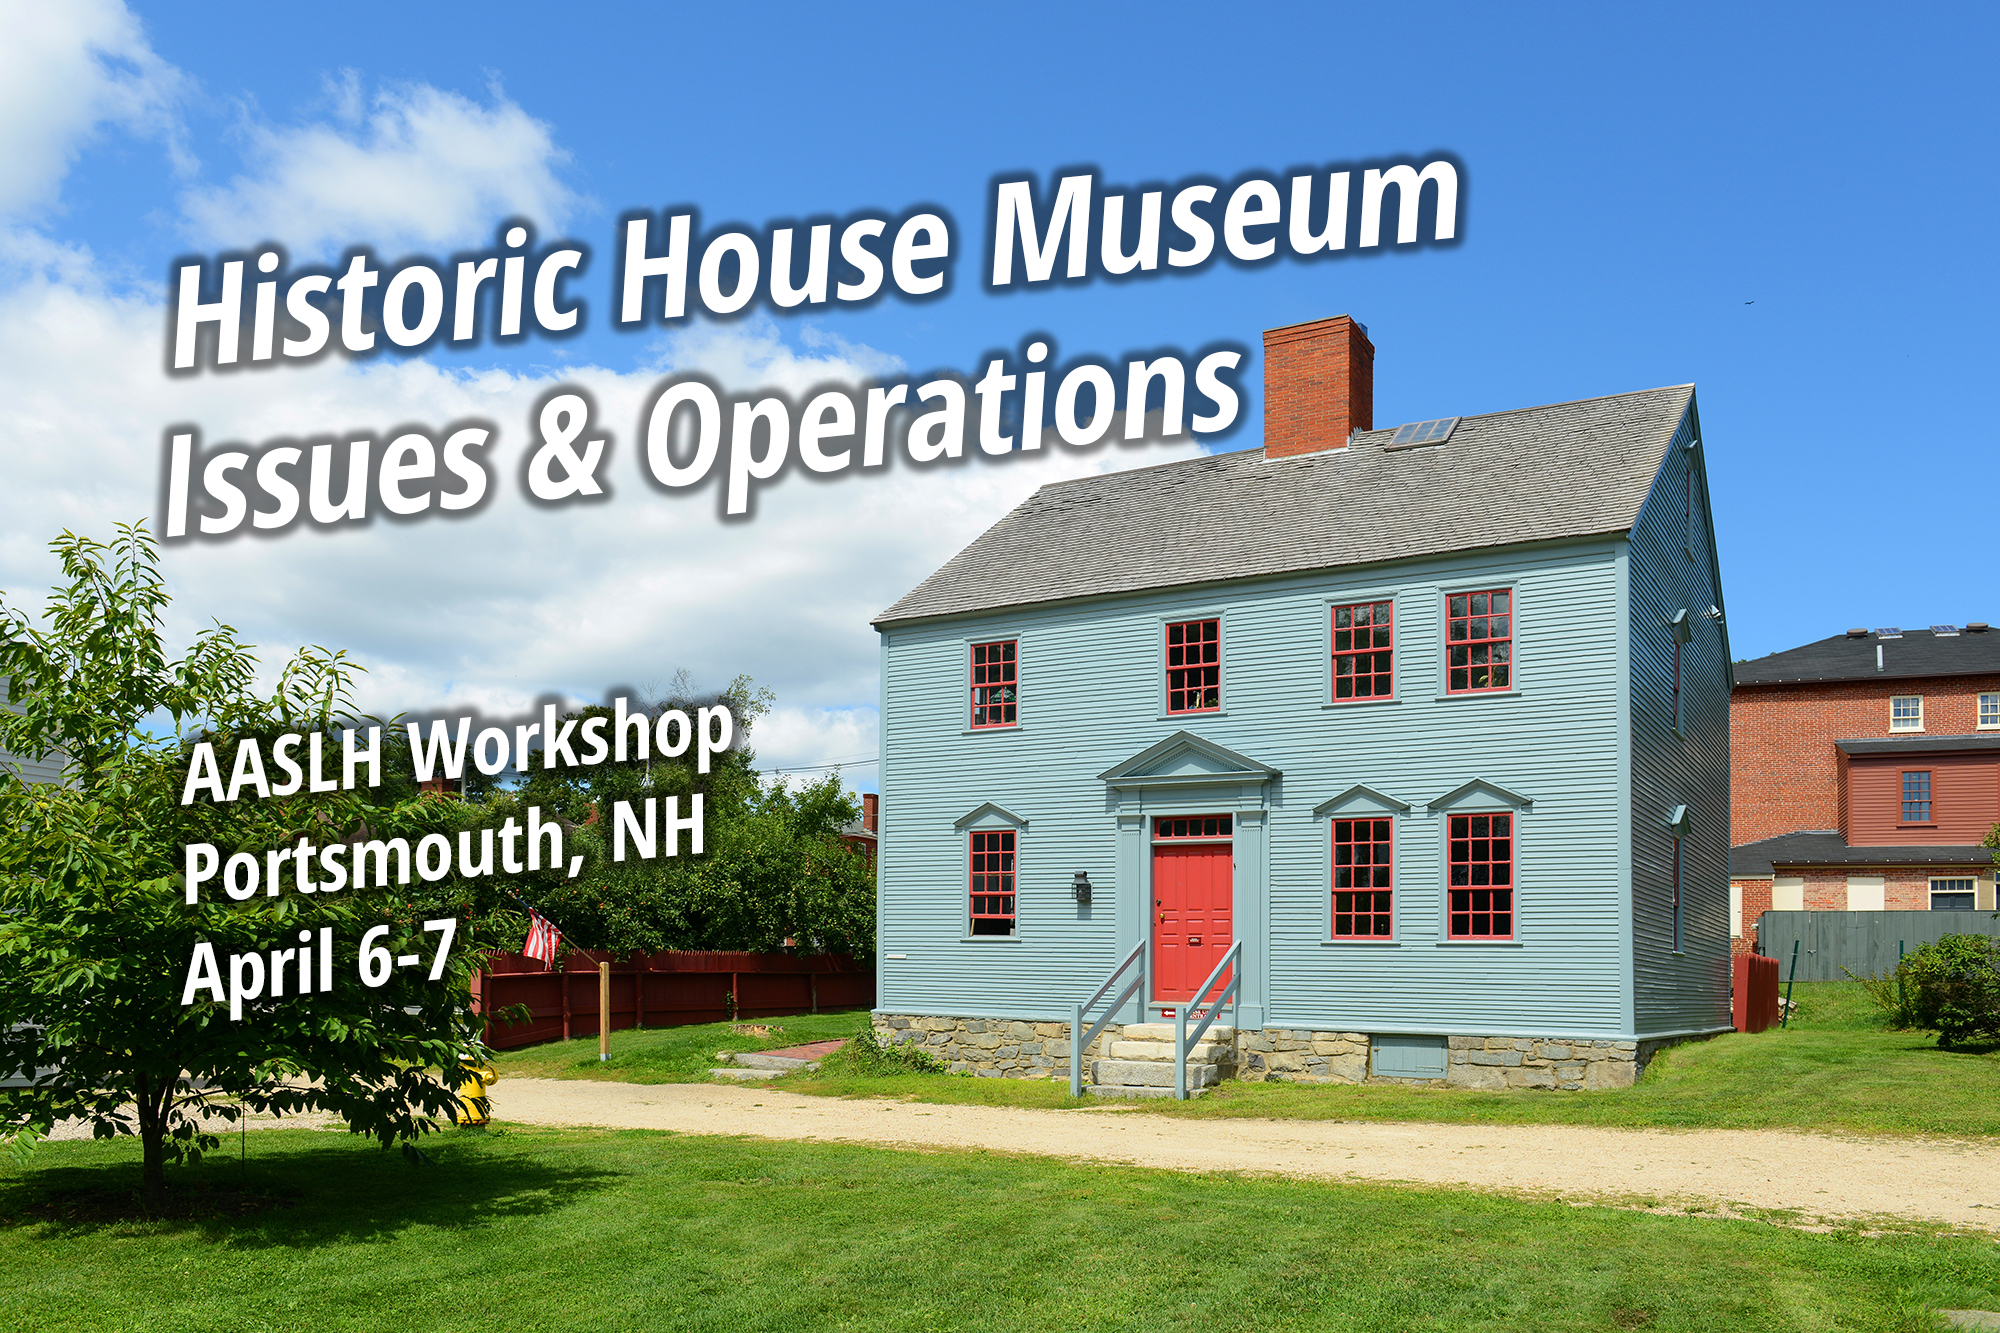 Wheelwright House was built in 1780 at Strawbery Banke Museum in